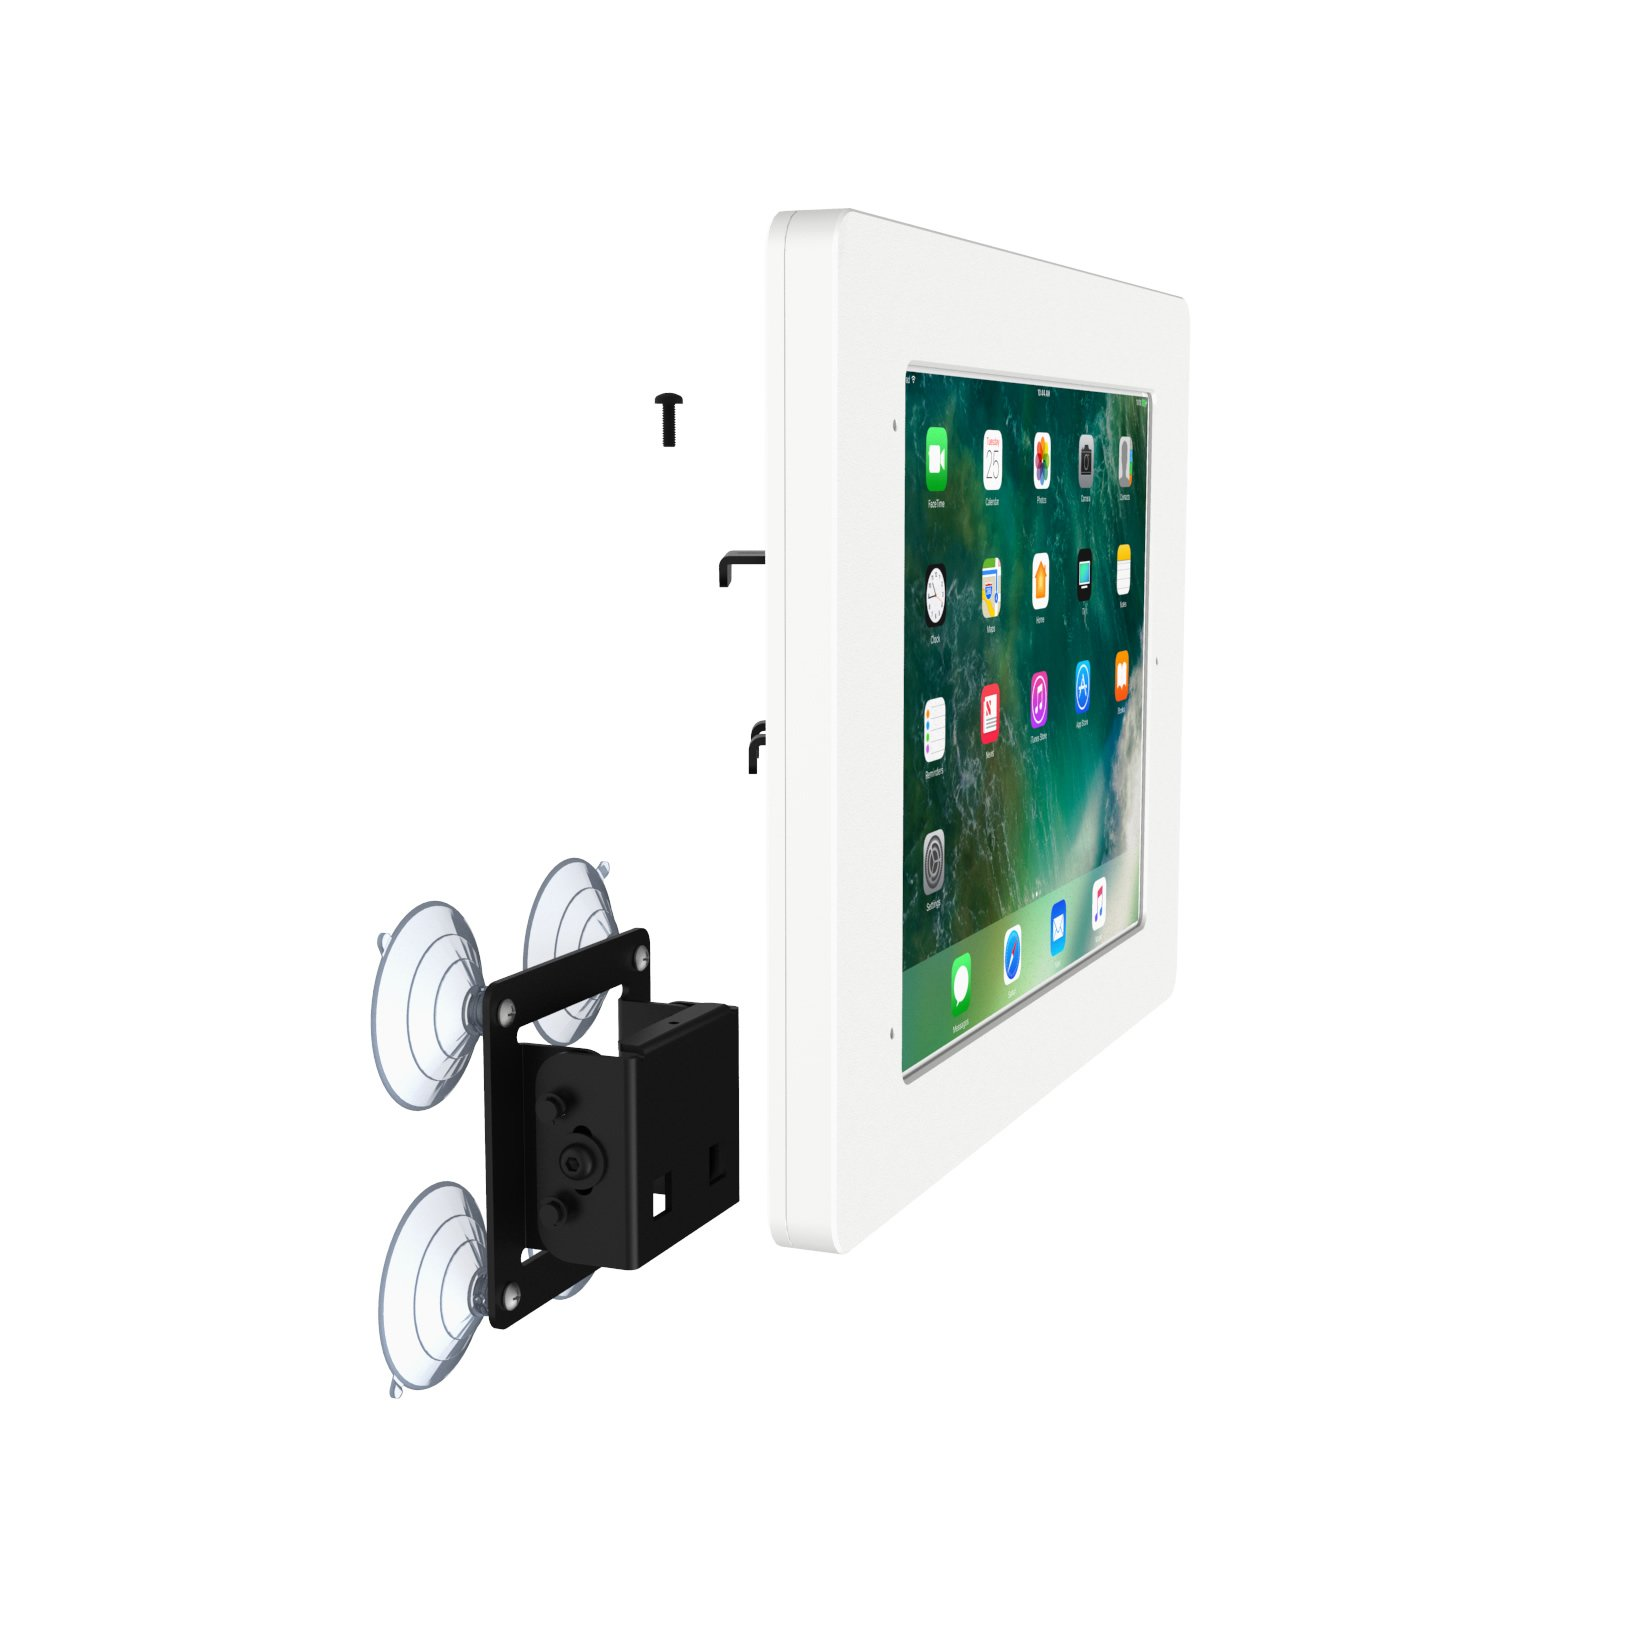 iPad Pro 10.5'' White Home Button Covered Tilting Removable Glass Mount [Bundle] by VidaMount (Image #9)